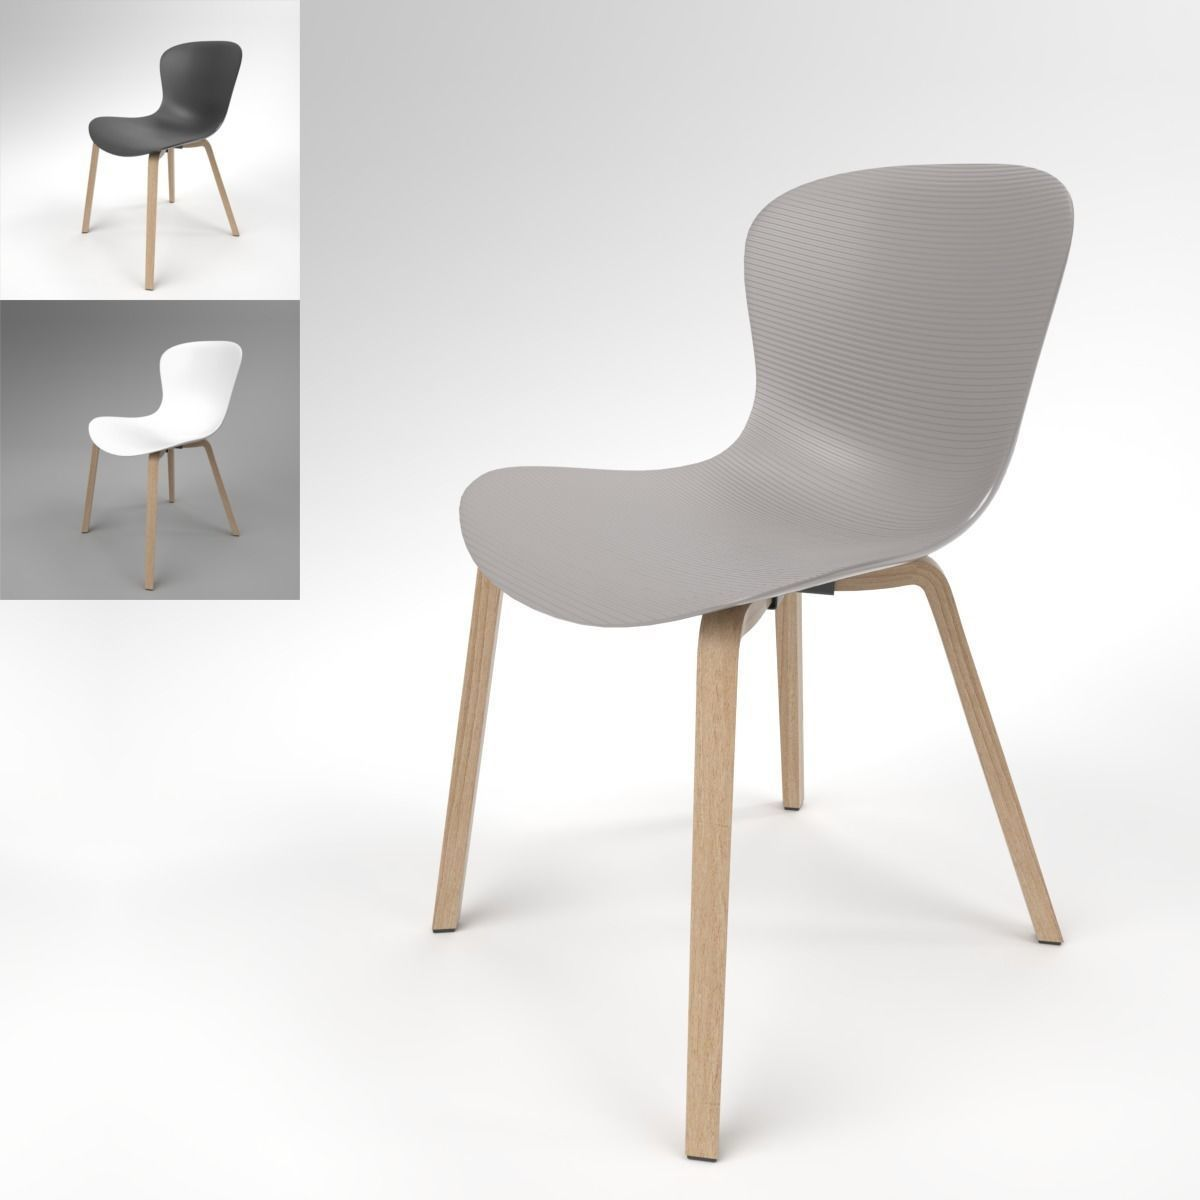 Fritz Hansen Chairs Fritz Hansen Nap Ks52 Chair Blender Cycles 3d Model